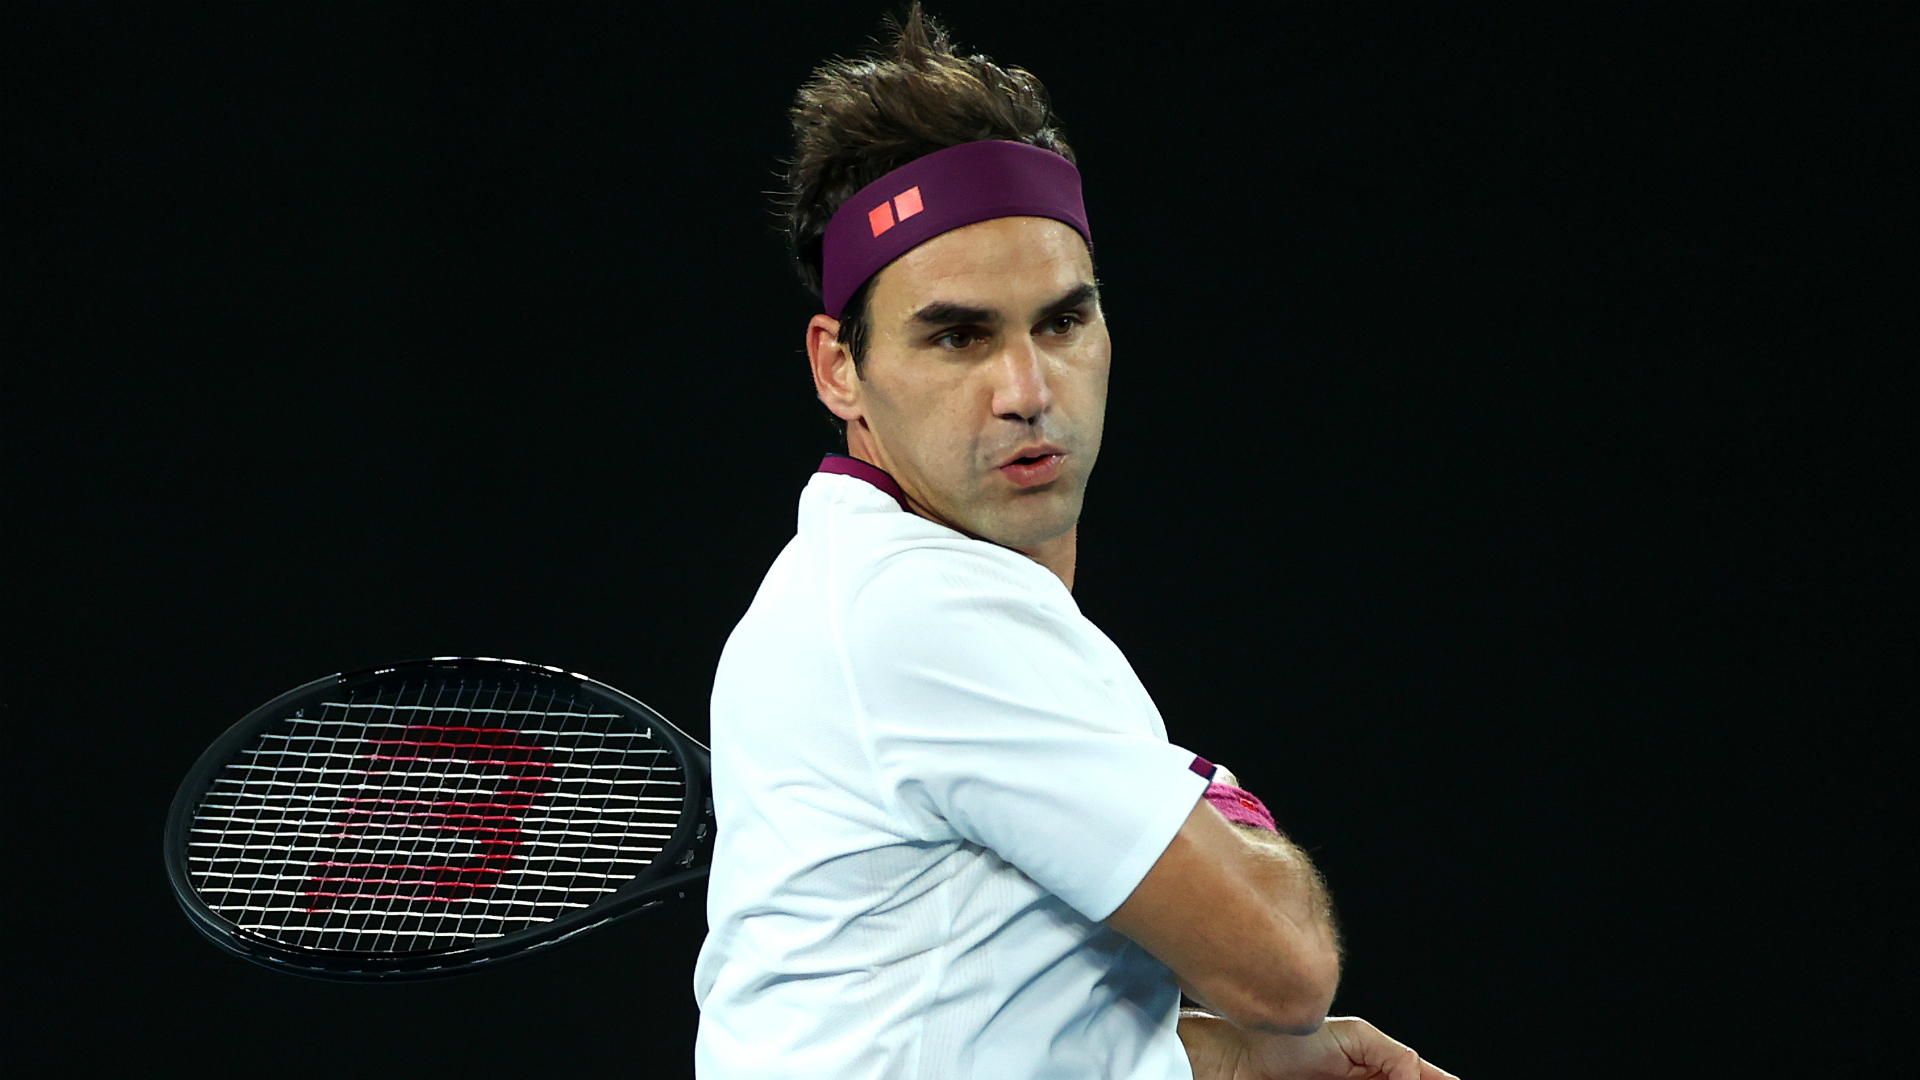 Federer 'very excited' ahead of ATP return in Doha